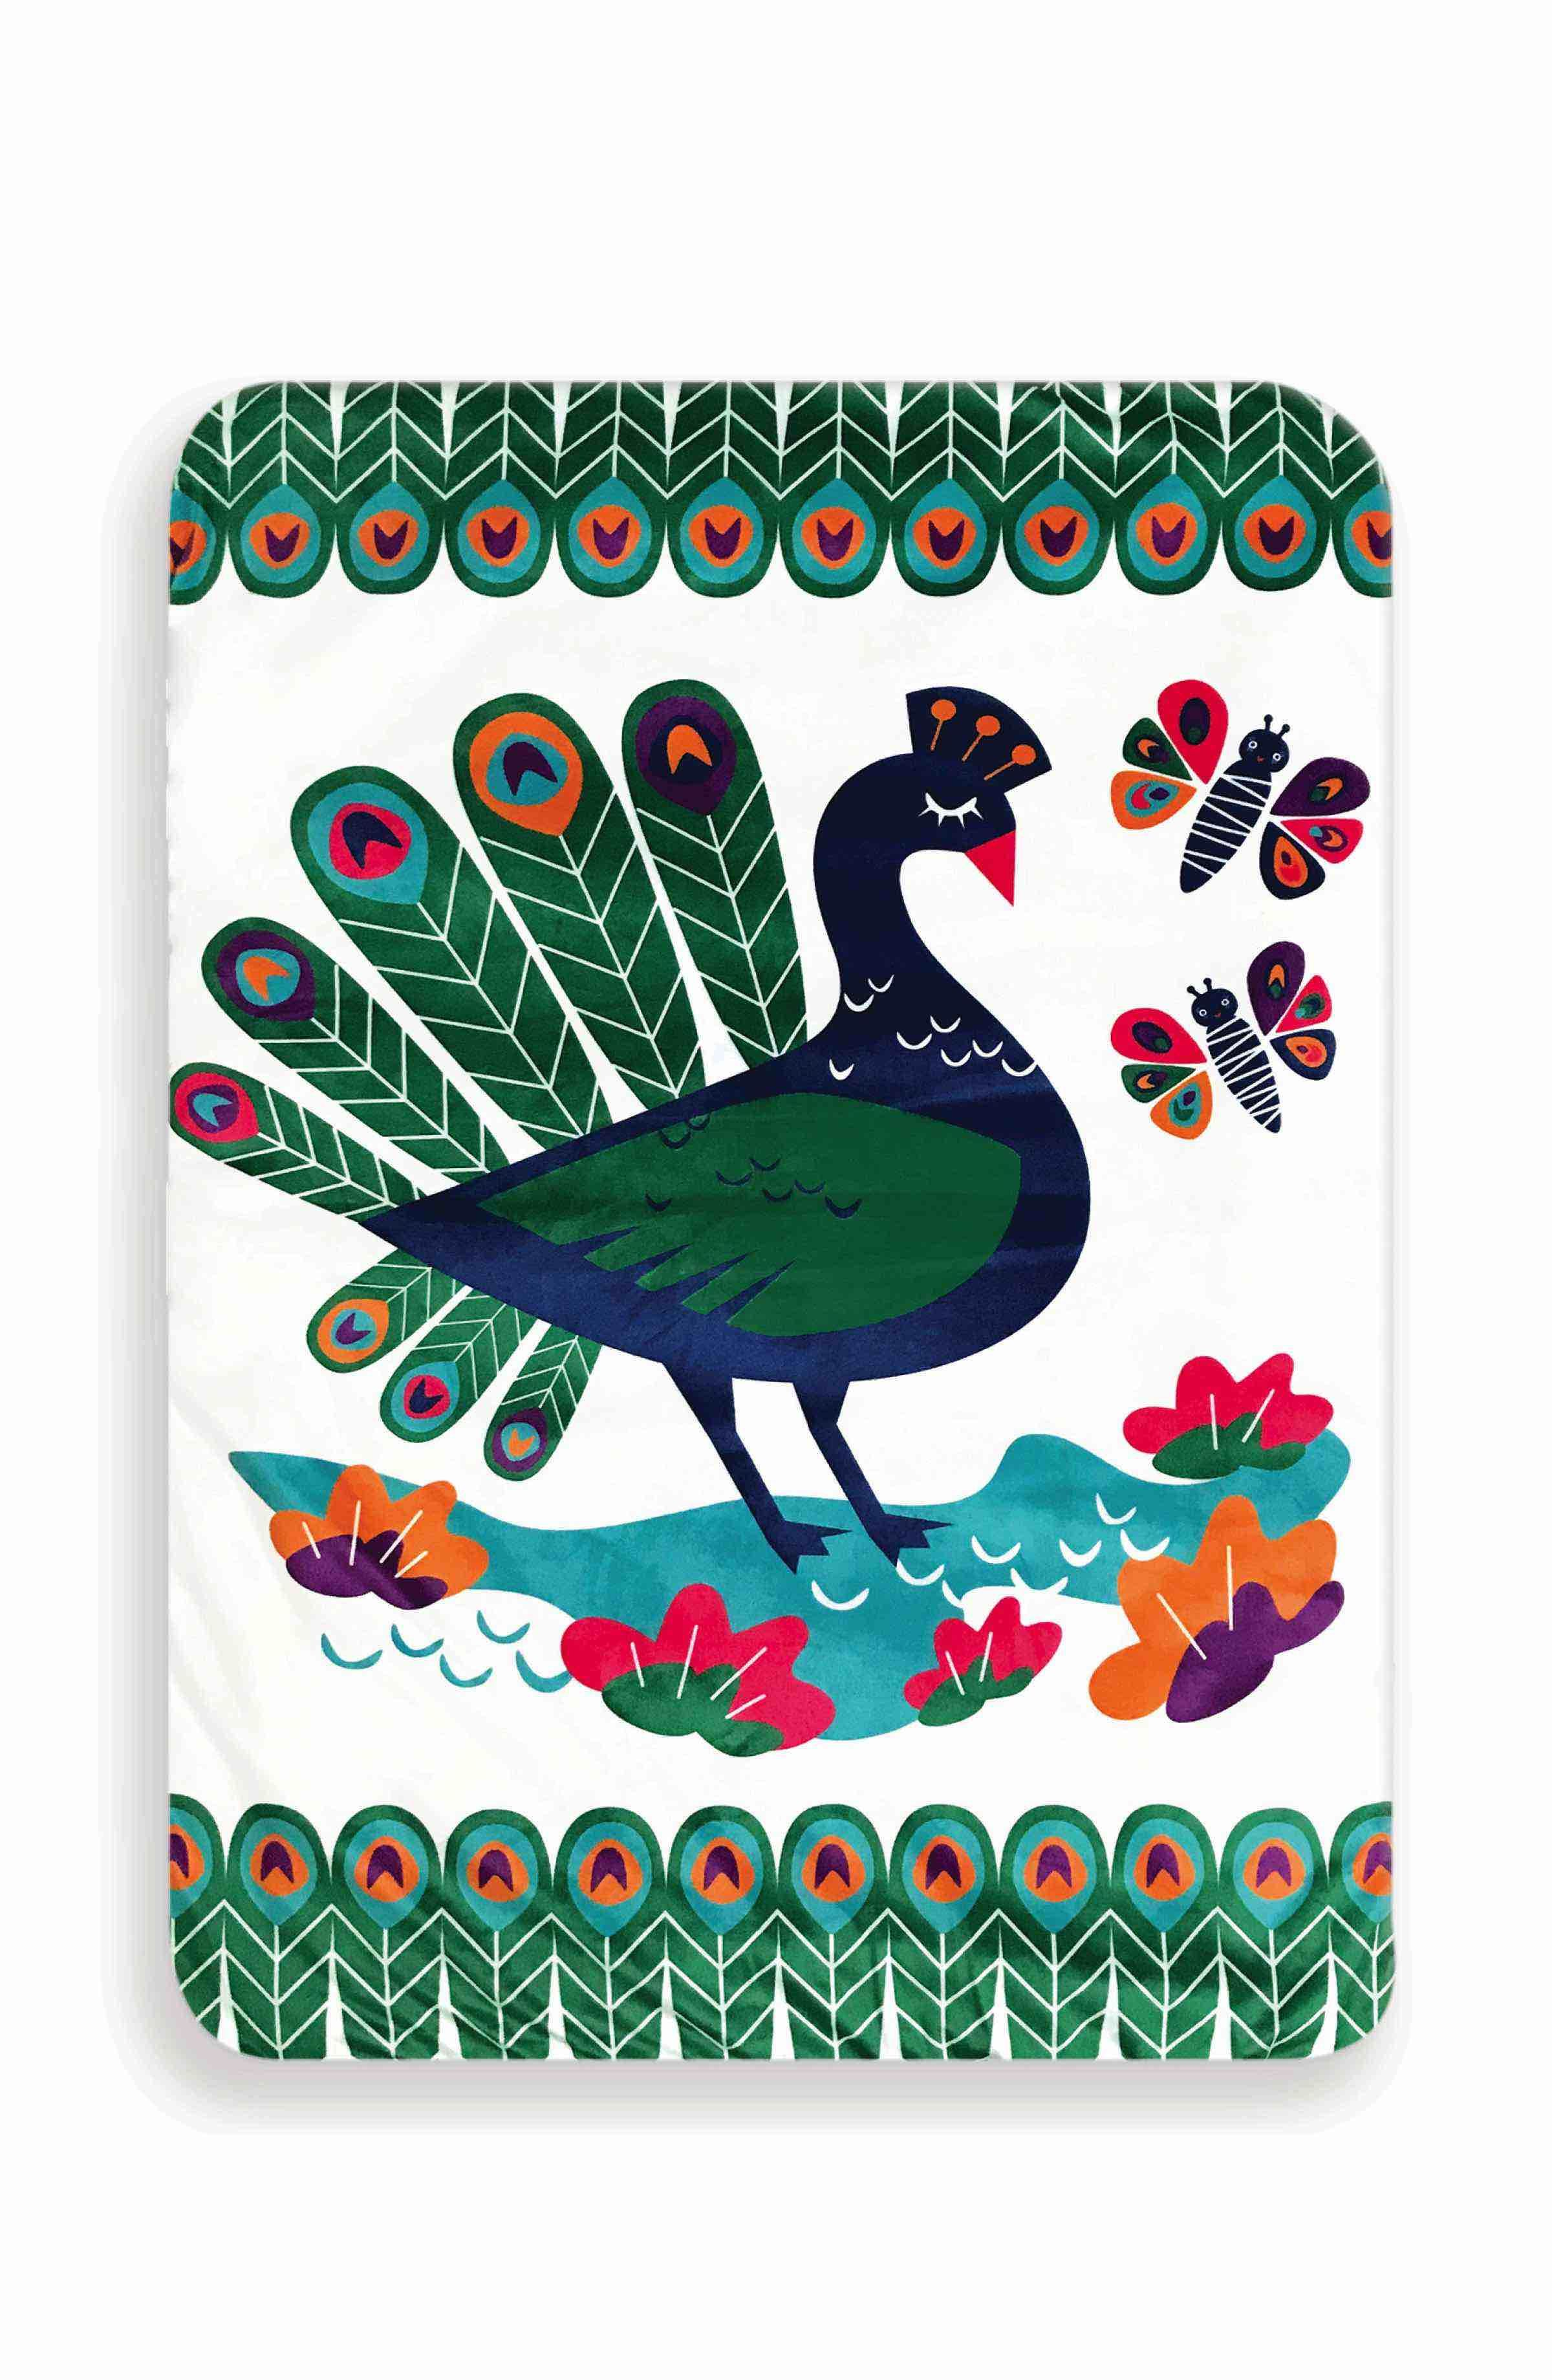 Limited edition peacock paradise play mat and activity toy set in